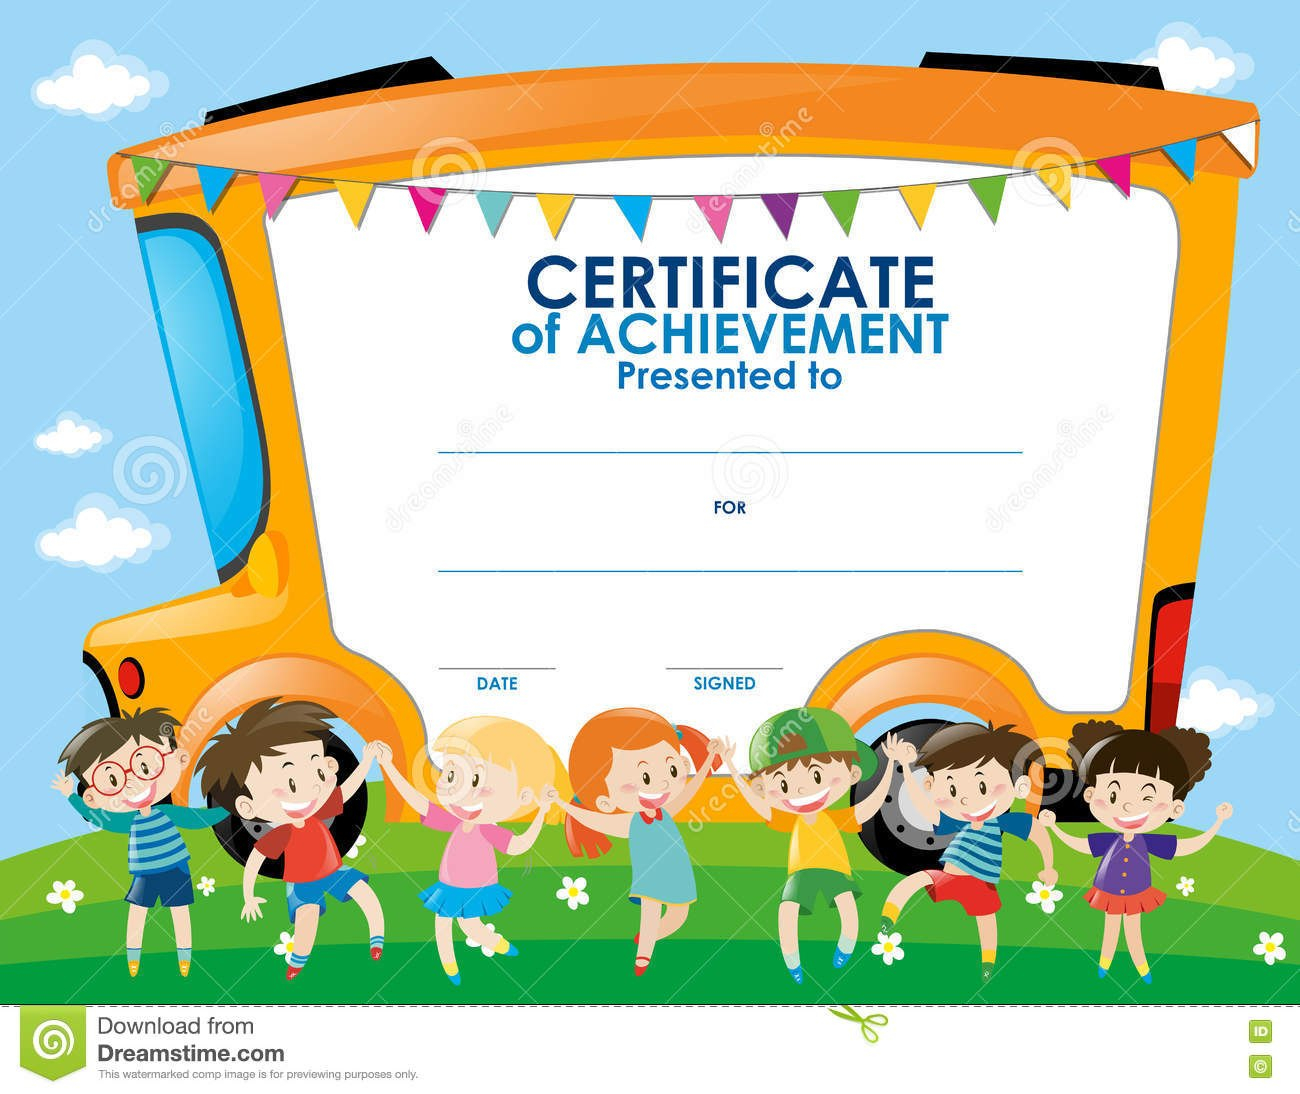 Certificate Template With Children And School Bus Stock Illustration With Regard To Children's Certificate Template